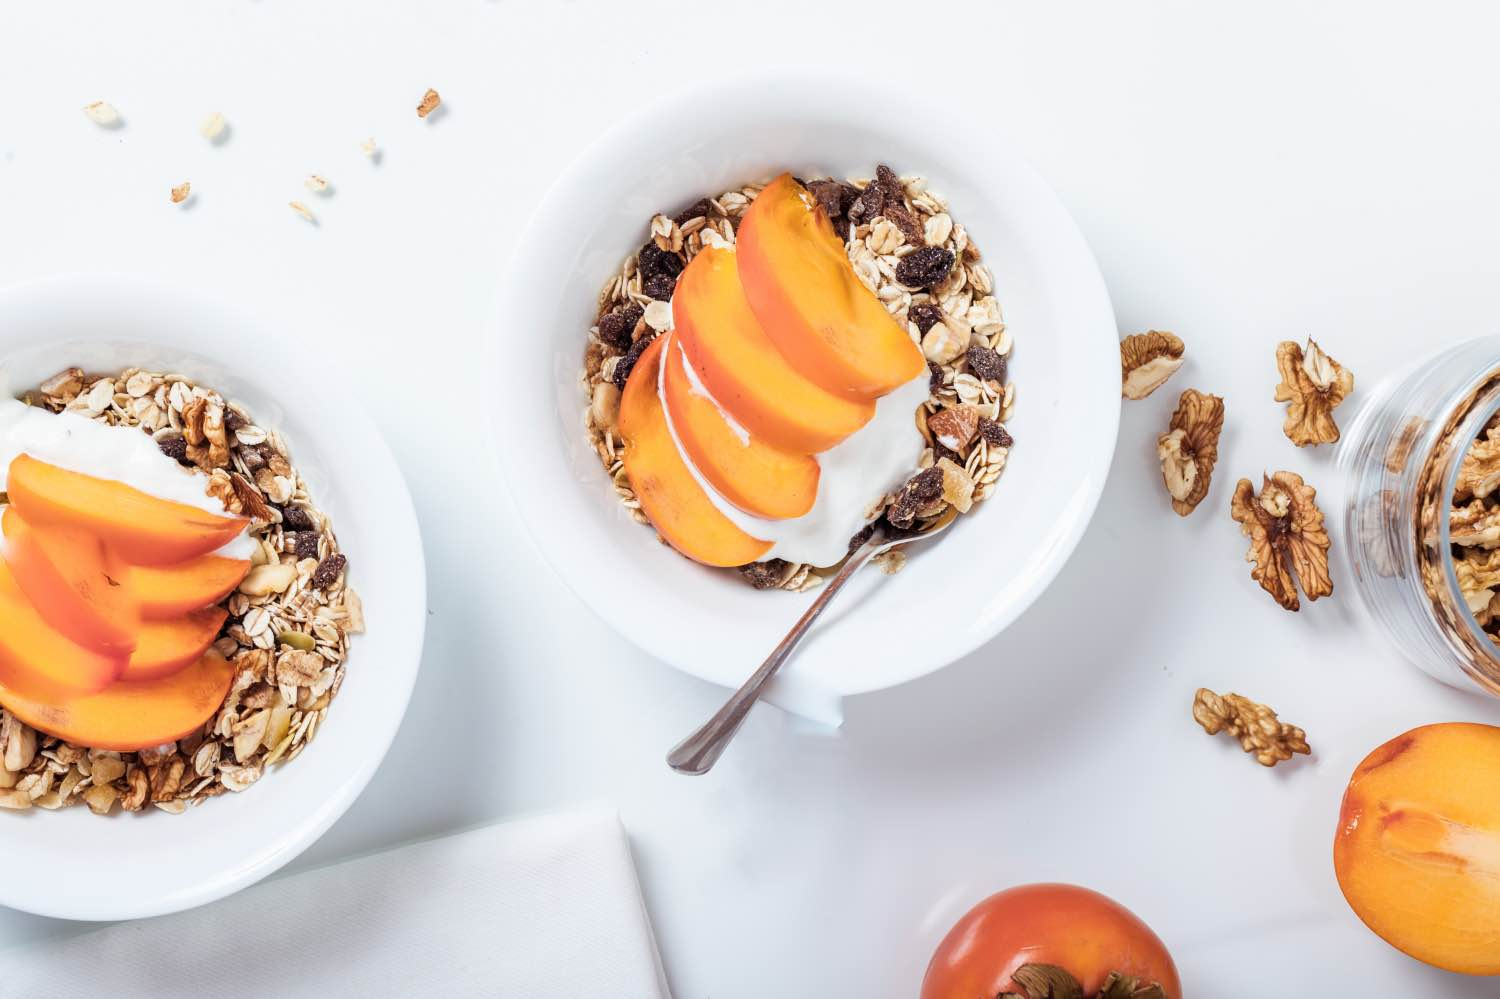 finished recipe how to make peaches and cream overnight oats